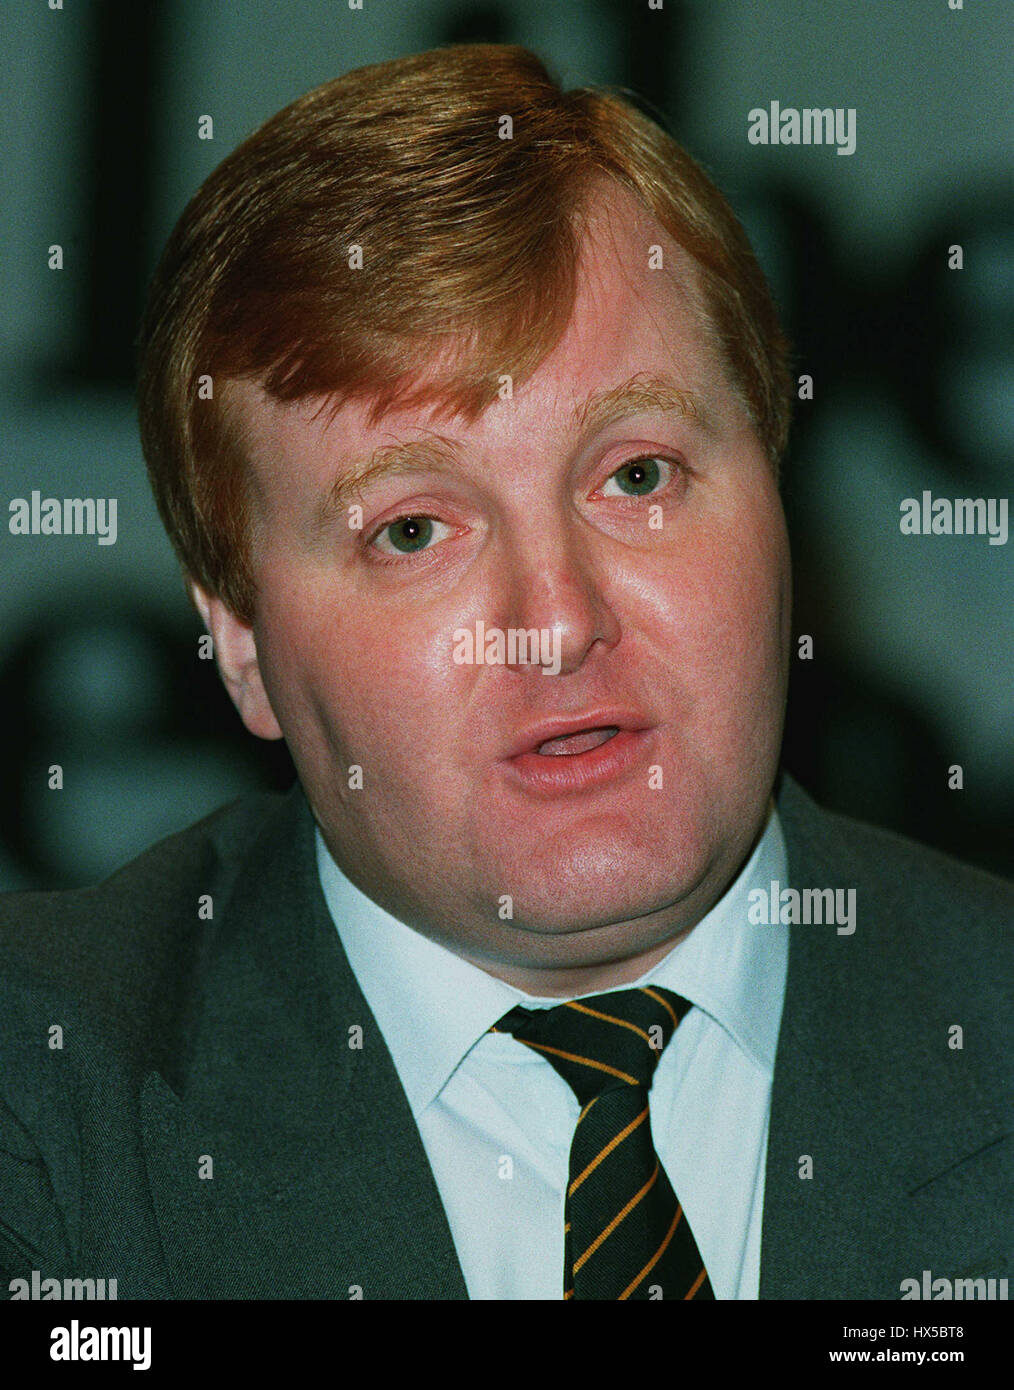 CHARLES KENNEDY MP LIBERAL DEMOCRATS 20 October 1994 - Stock Image